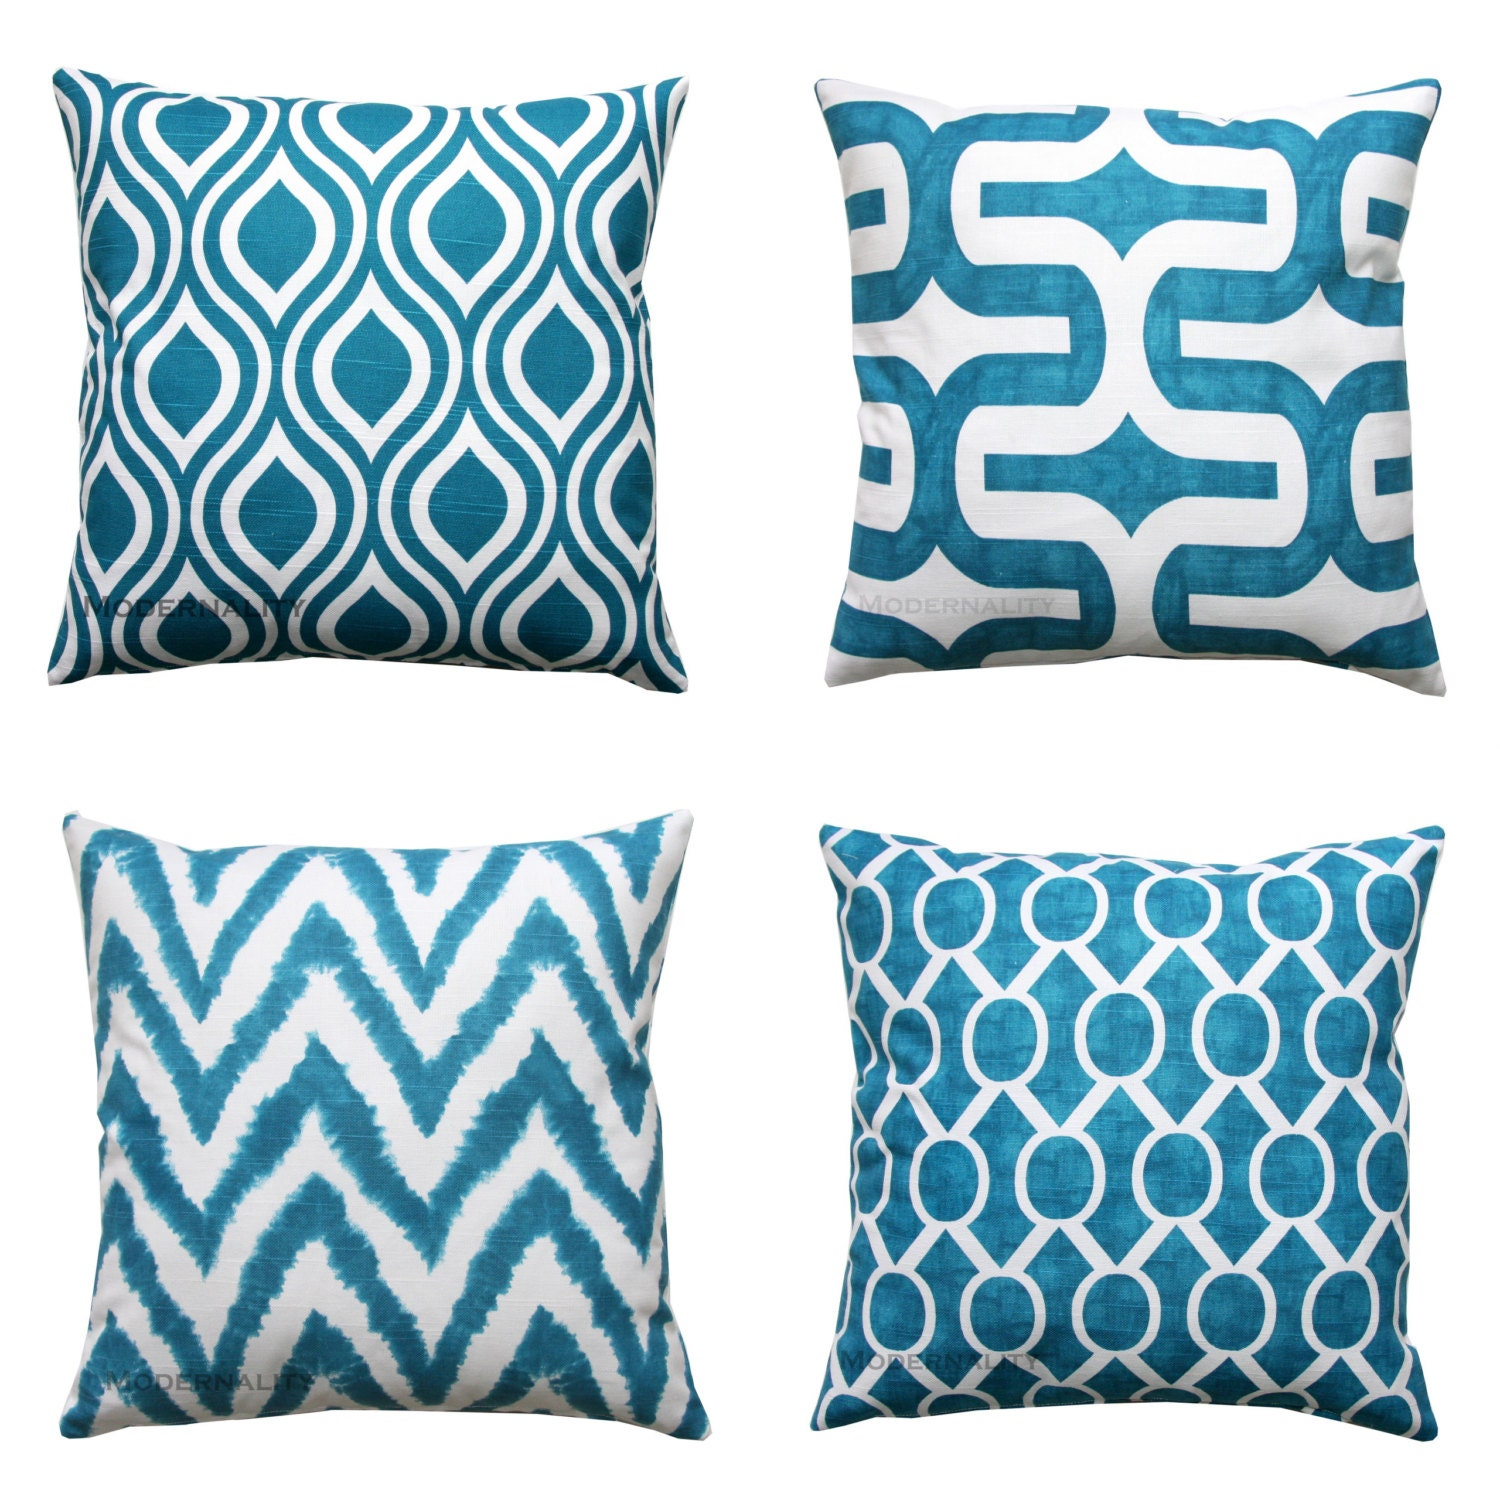 Blue toss pillows aquarius dark turquoise by for Almohadones para sillones